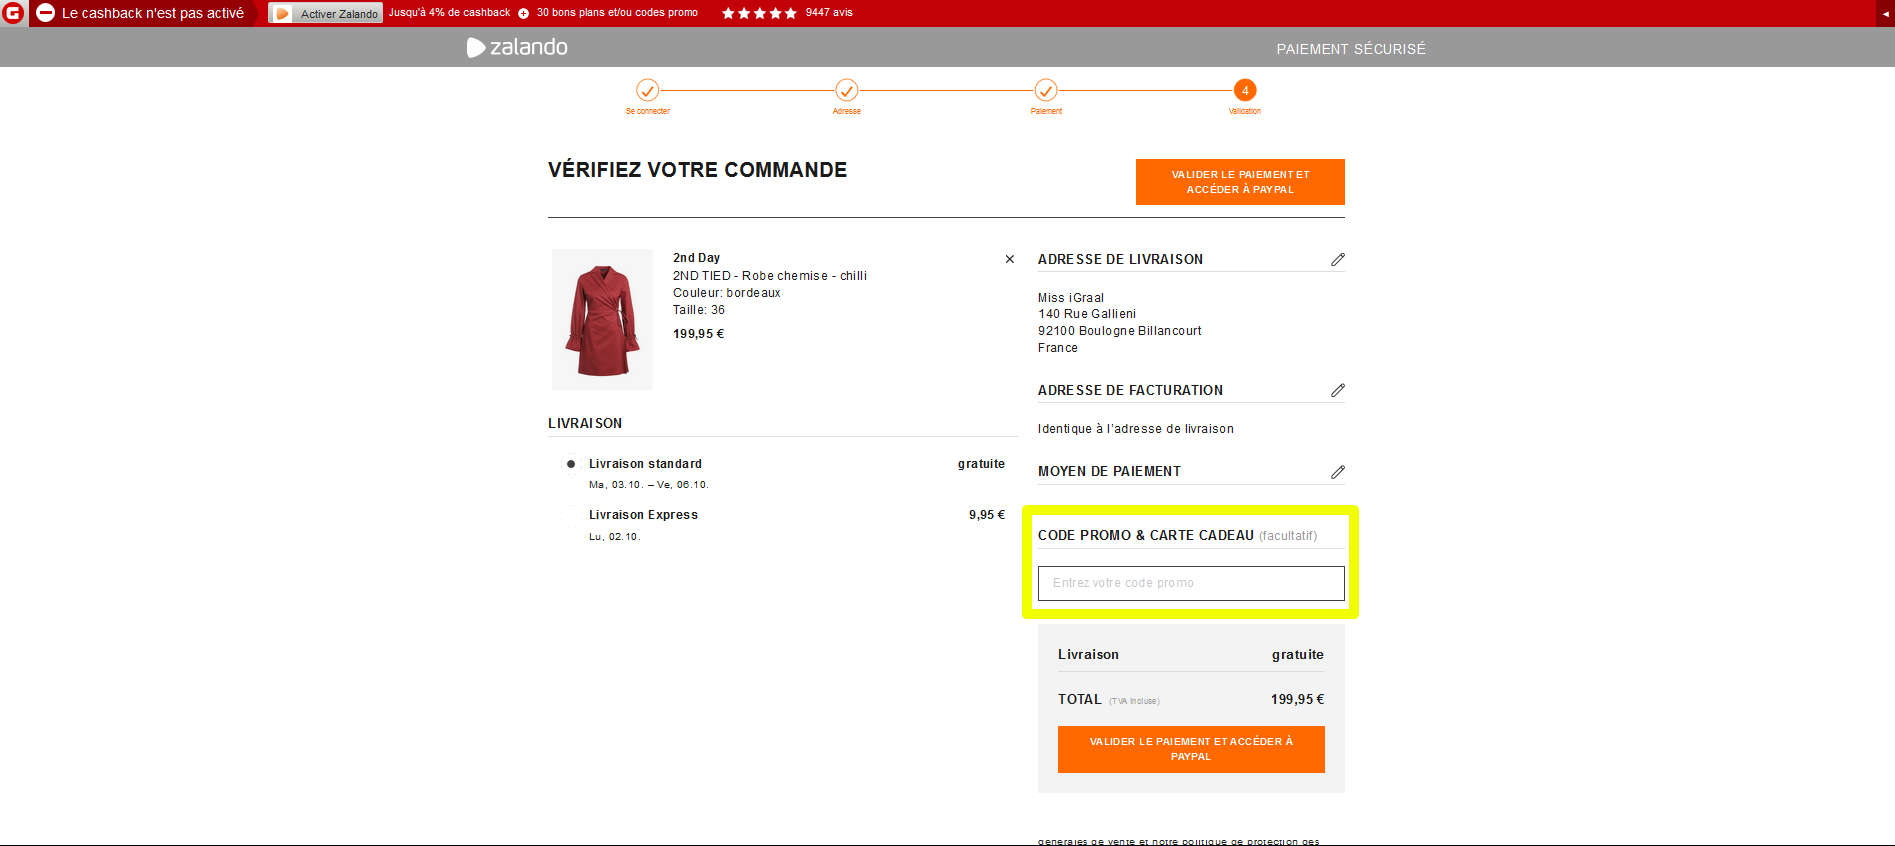 How to use your Zalando discount code. Saving money is simple with the Zalando codes found on this page. As a major online fashion retailer you'll be delighted with the styles you find on Zalando. You'll be even happier when you can save some cash on your order, so read on to find out how. At jedemipan.tk we work hard to get the very best Zalando promo codes.